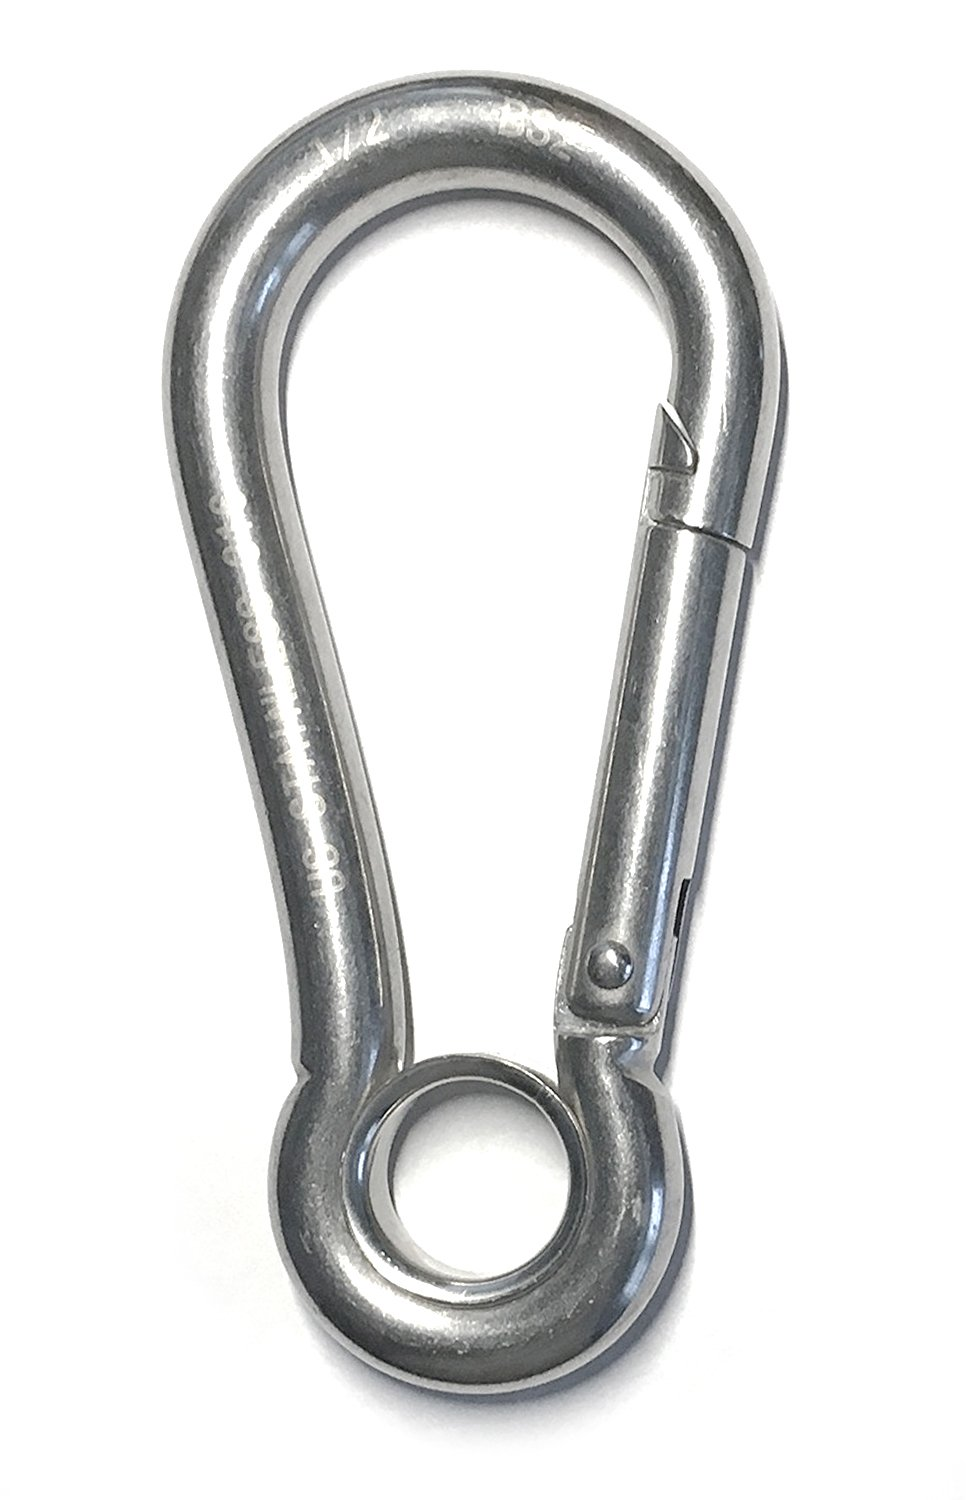 Stainless Steel 316 Spring Hook with Eyelet Carabiner 1/2'' (12mm) Marine Grade